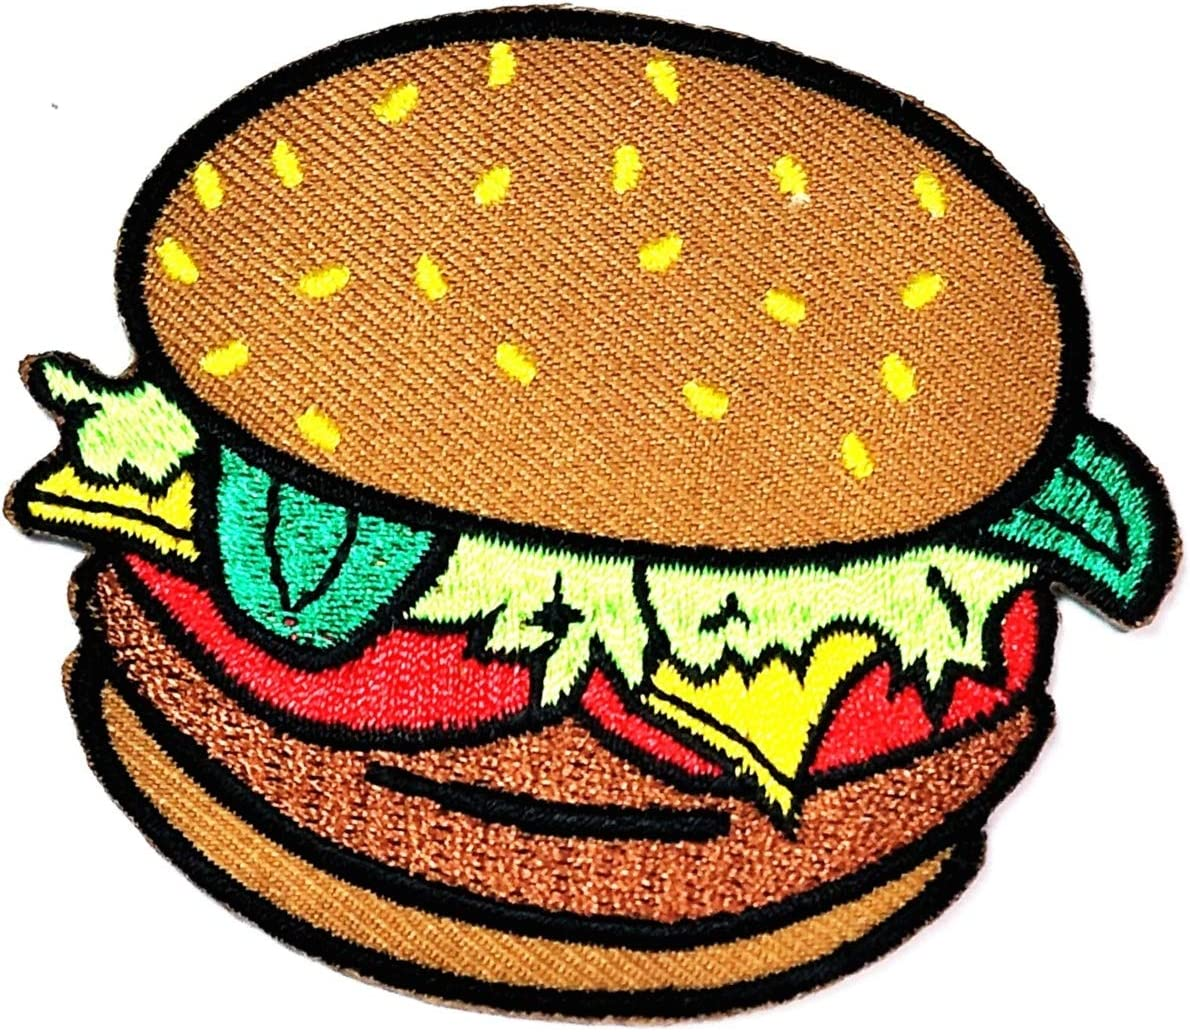 Burger Hamburger Food Cooking Chef Kid Cartoon Patch Food and Drink Embroidered Iron on Applique Patches for DIY Jeans Jacket Clothing Handbag Shoes Caps Decoration DIY or Souvenir Gift Birthday (06)